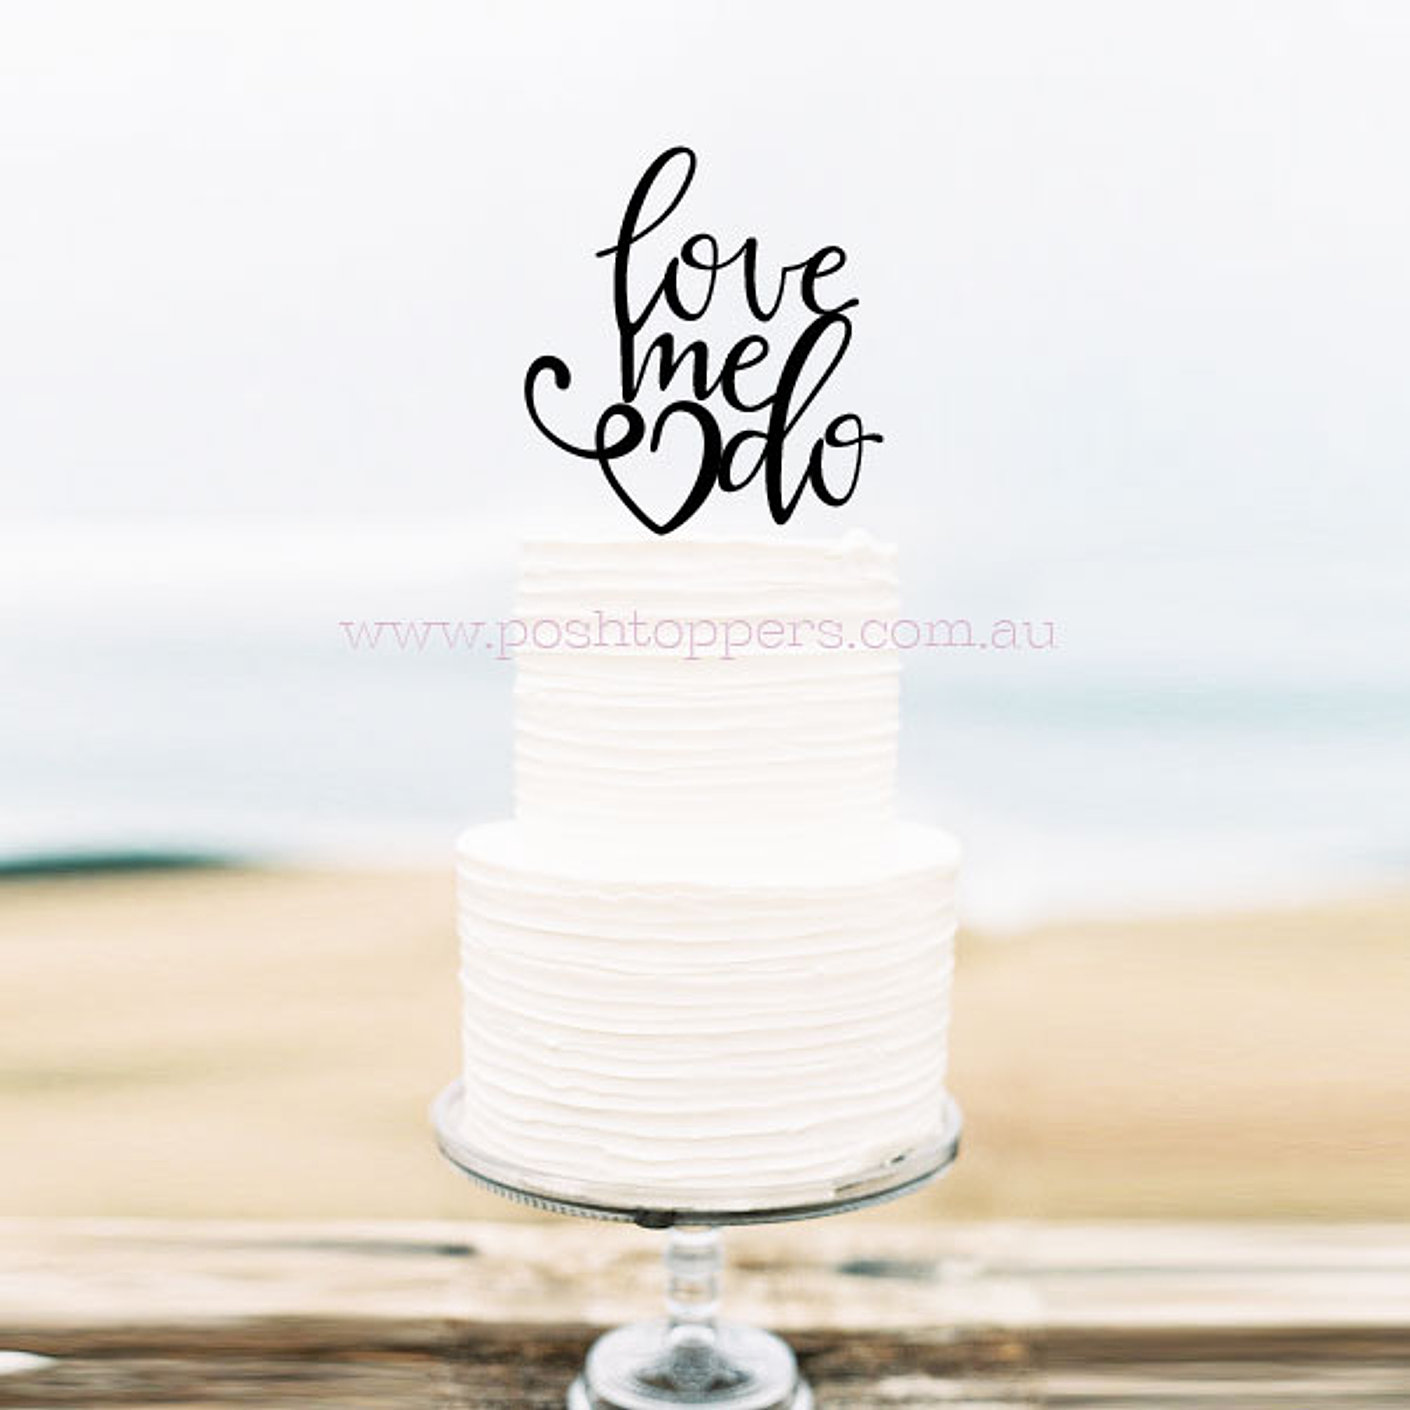 Personalised Cake Toppers Perth